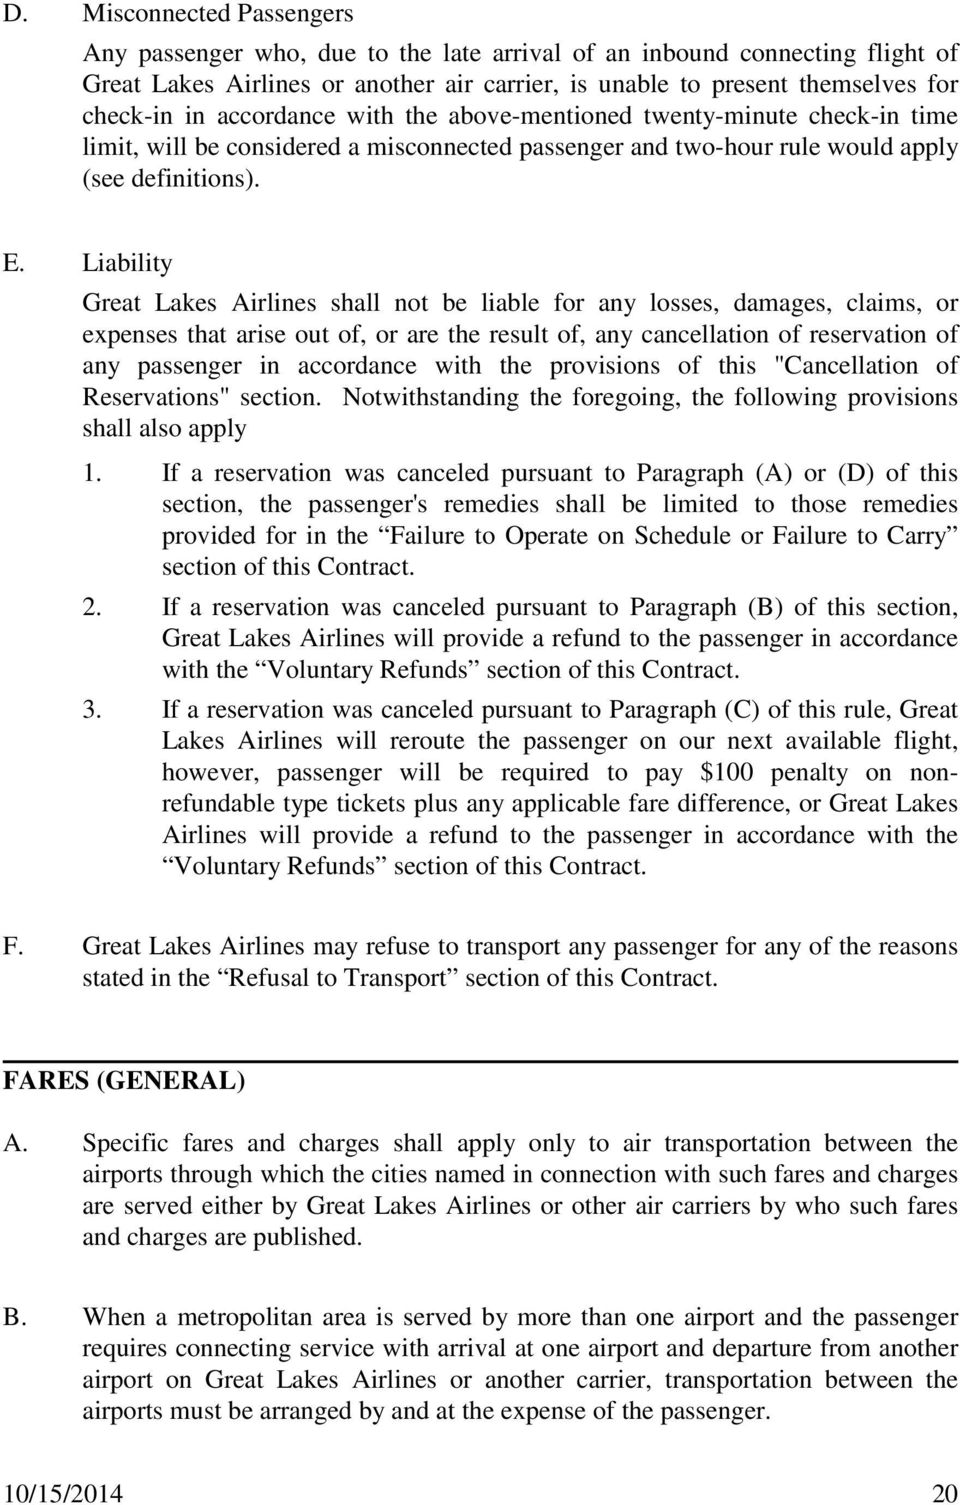 Liability Great Lakes Airlines shall not be liable for any losses, damages, claims, or expenses that arise out of, or are the result of, any cancellation of reservation of any passenger in accordance